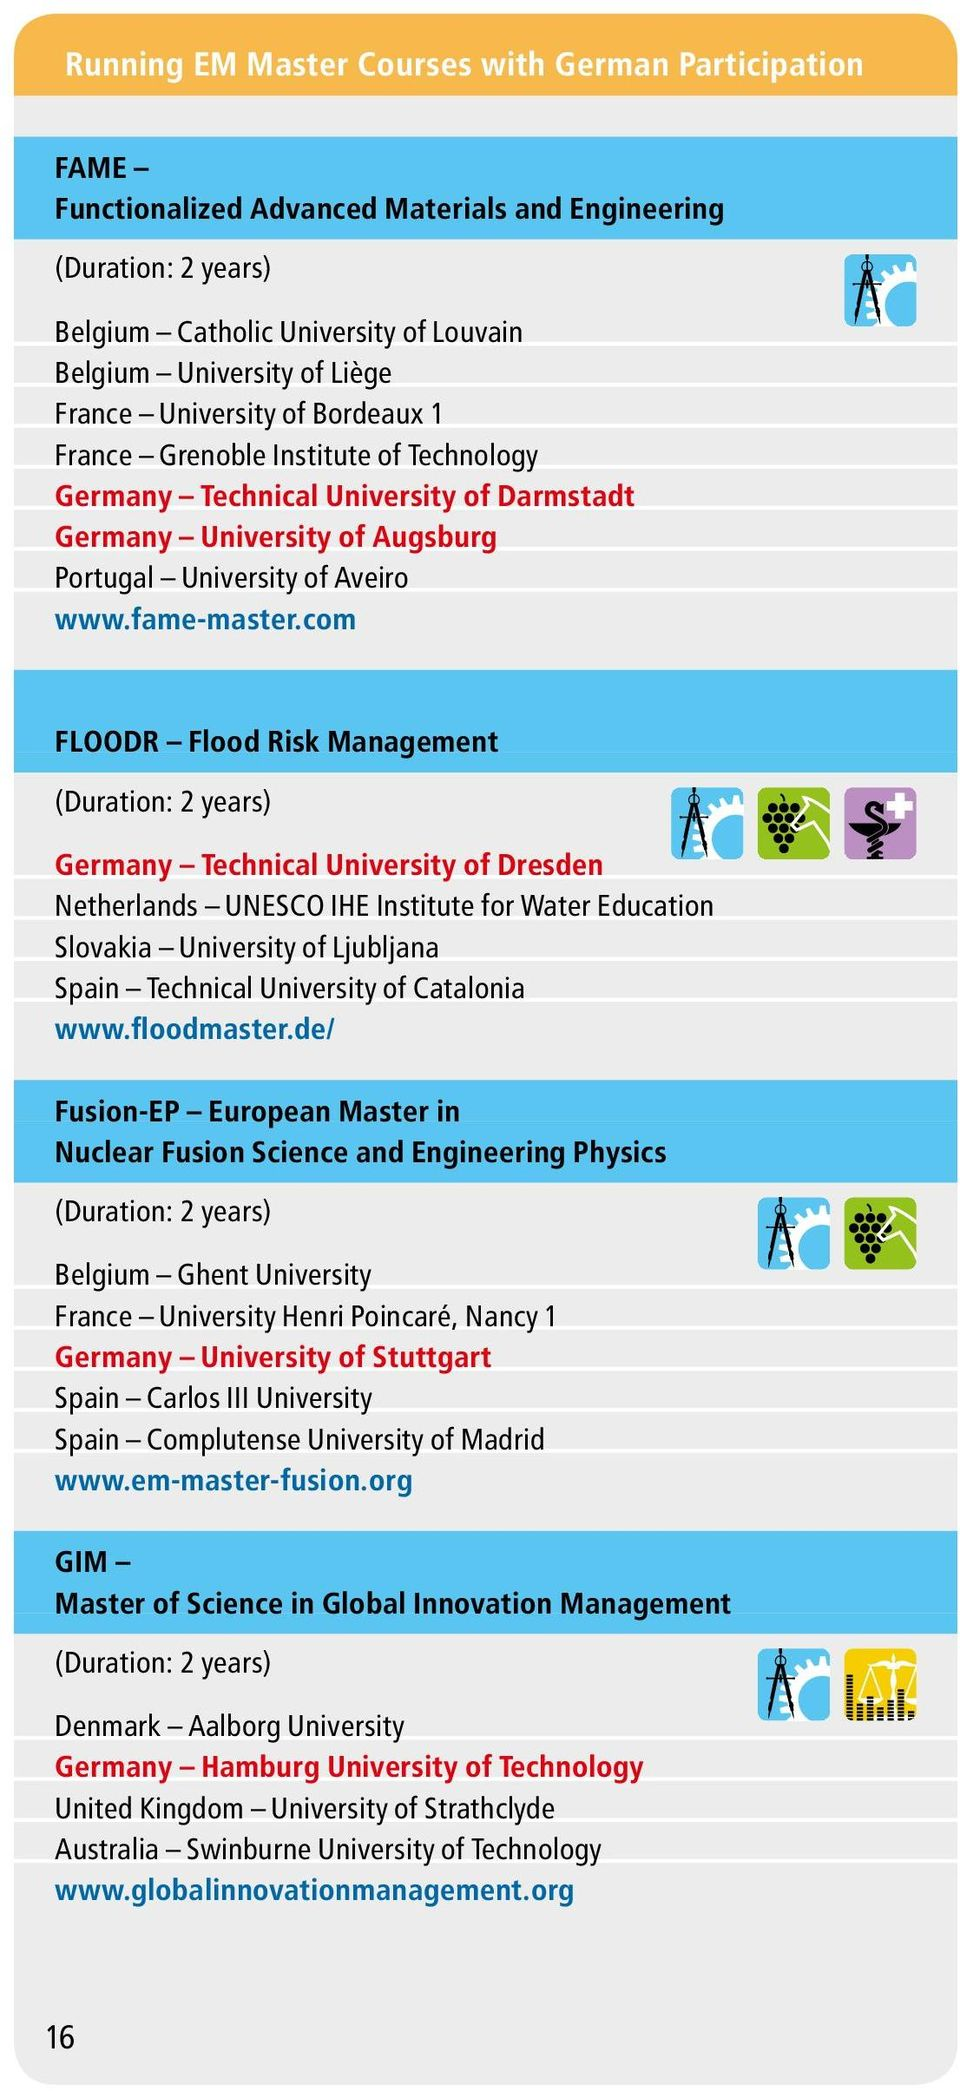 com FLOODR Flood Risk Management Germany Technical University of Dresden Netherlands UNESCO IHE Institute for Water Education Slovakia University of Ljubljana Spain Technical University of Catalonia